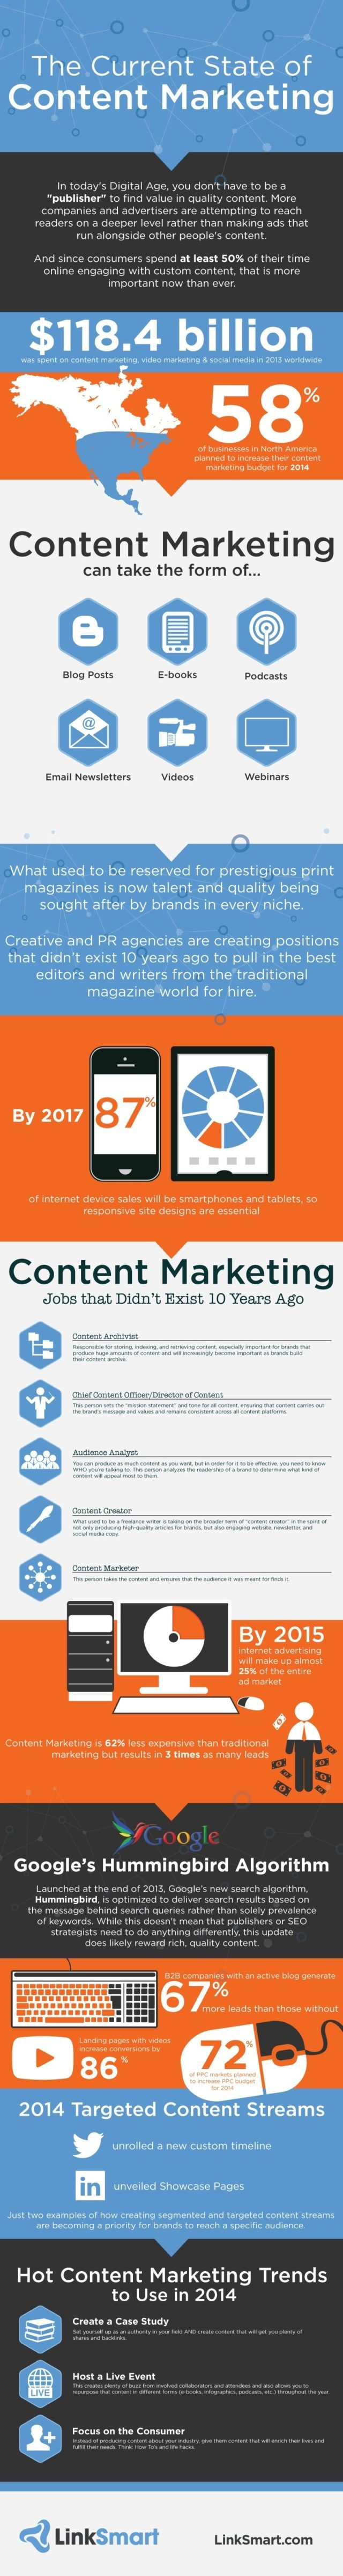 2014-state-content-marketing